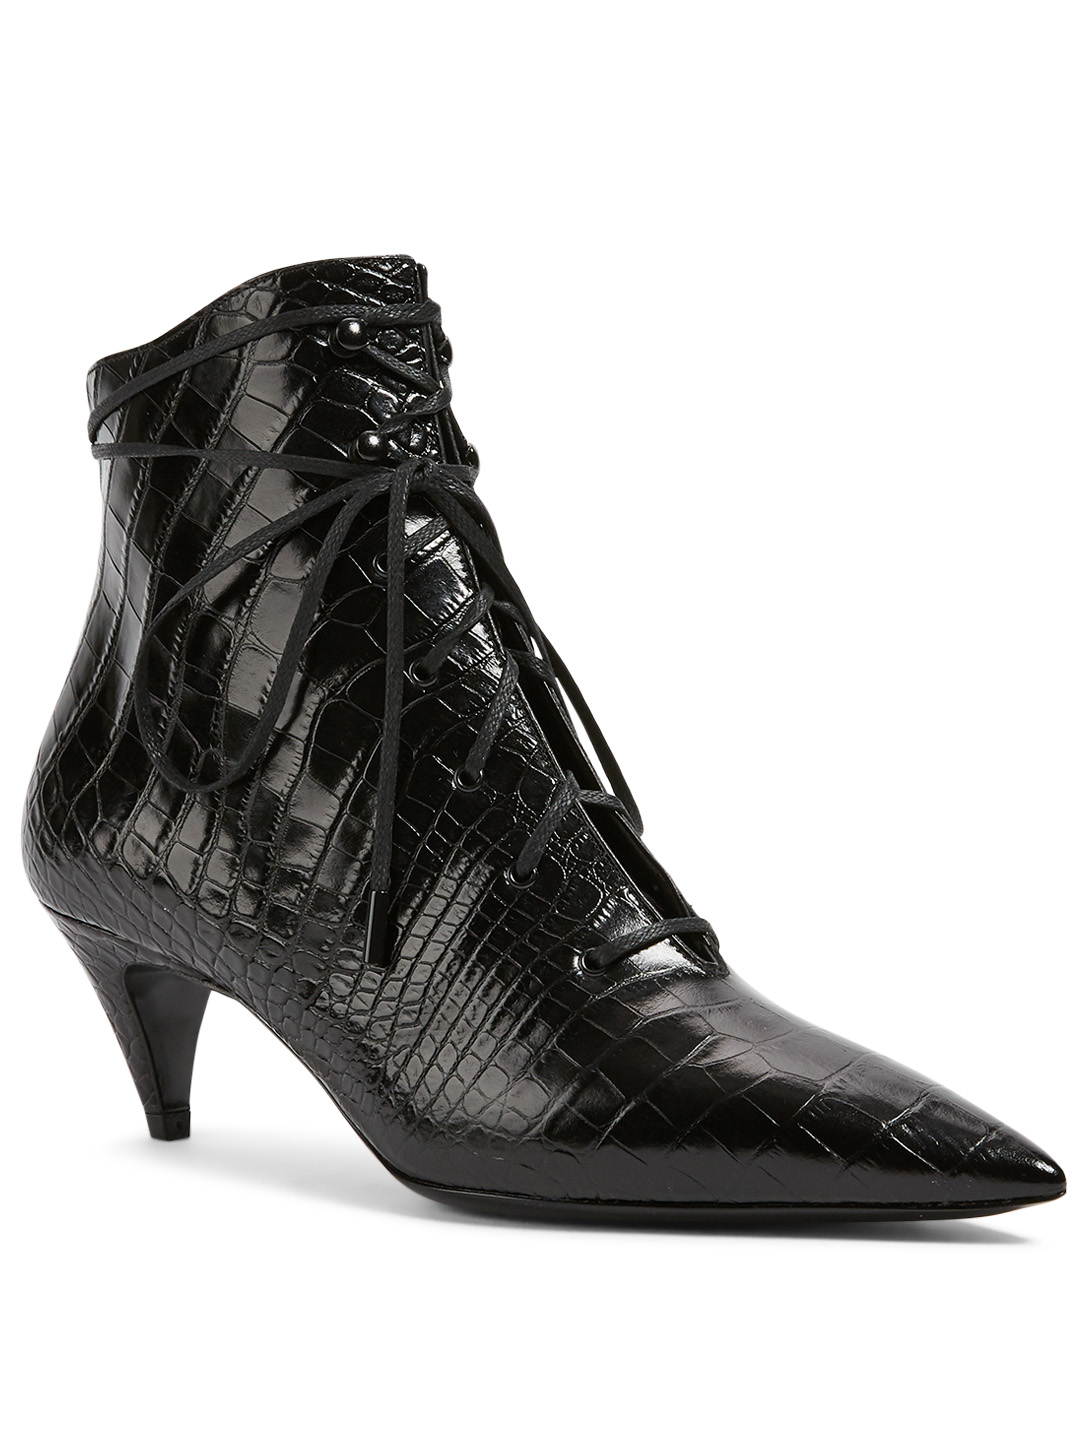 SAINT LAURENT Kiki Croc-Embossed Leather Ankle Boots Women's Black